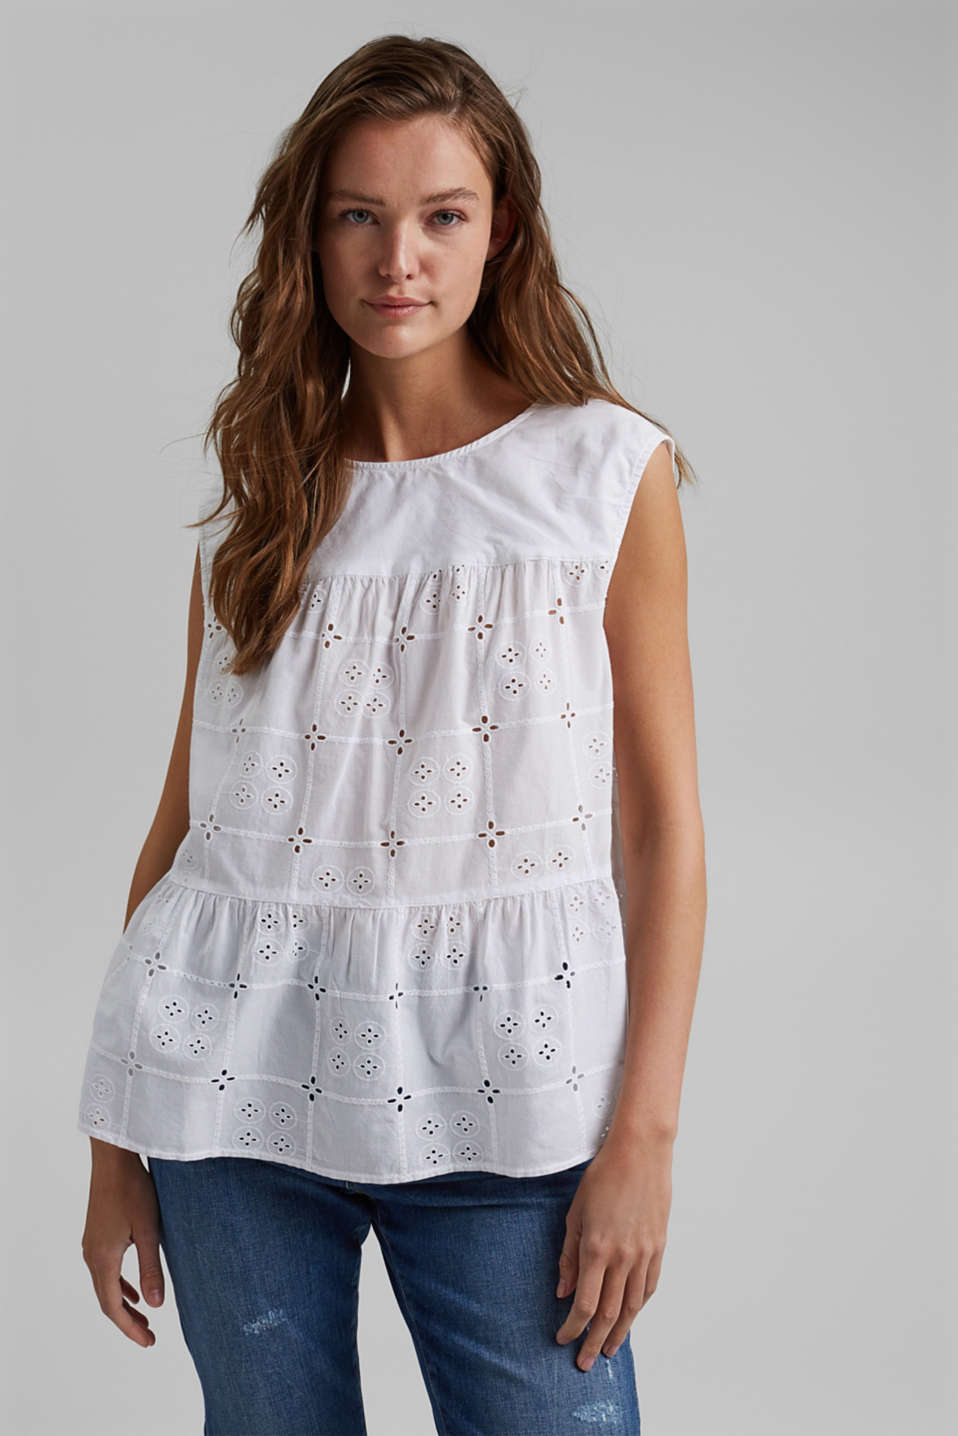 Esprit - Organic cotton blouse top with broderie anglaise